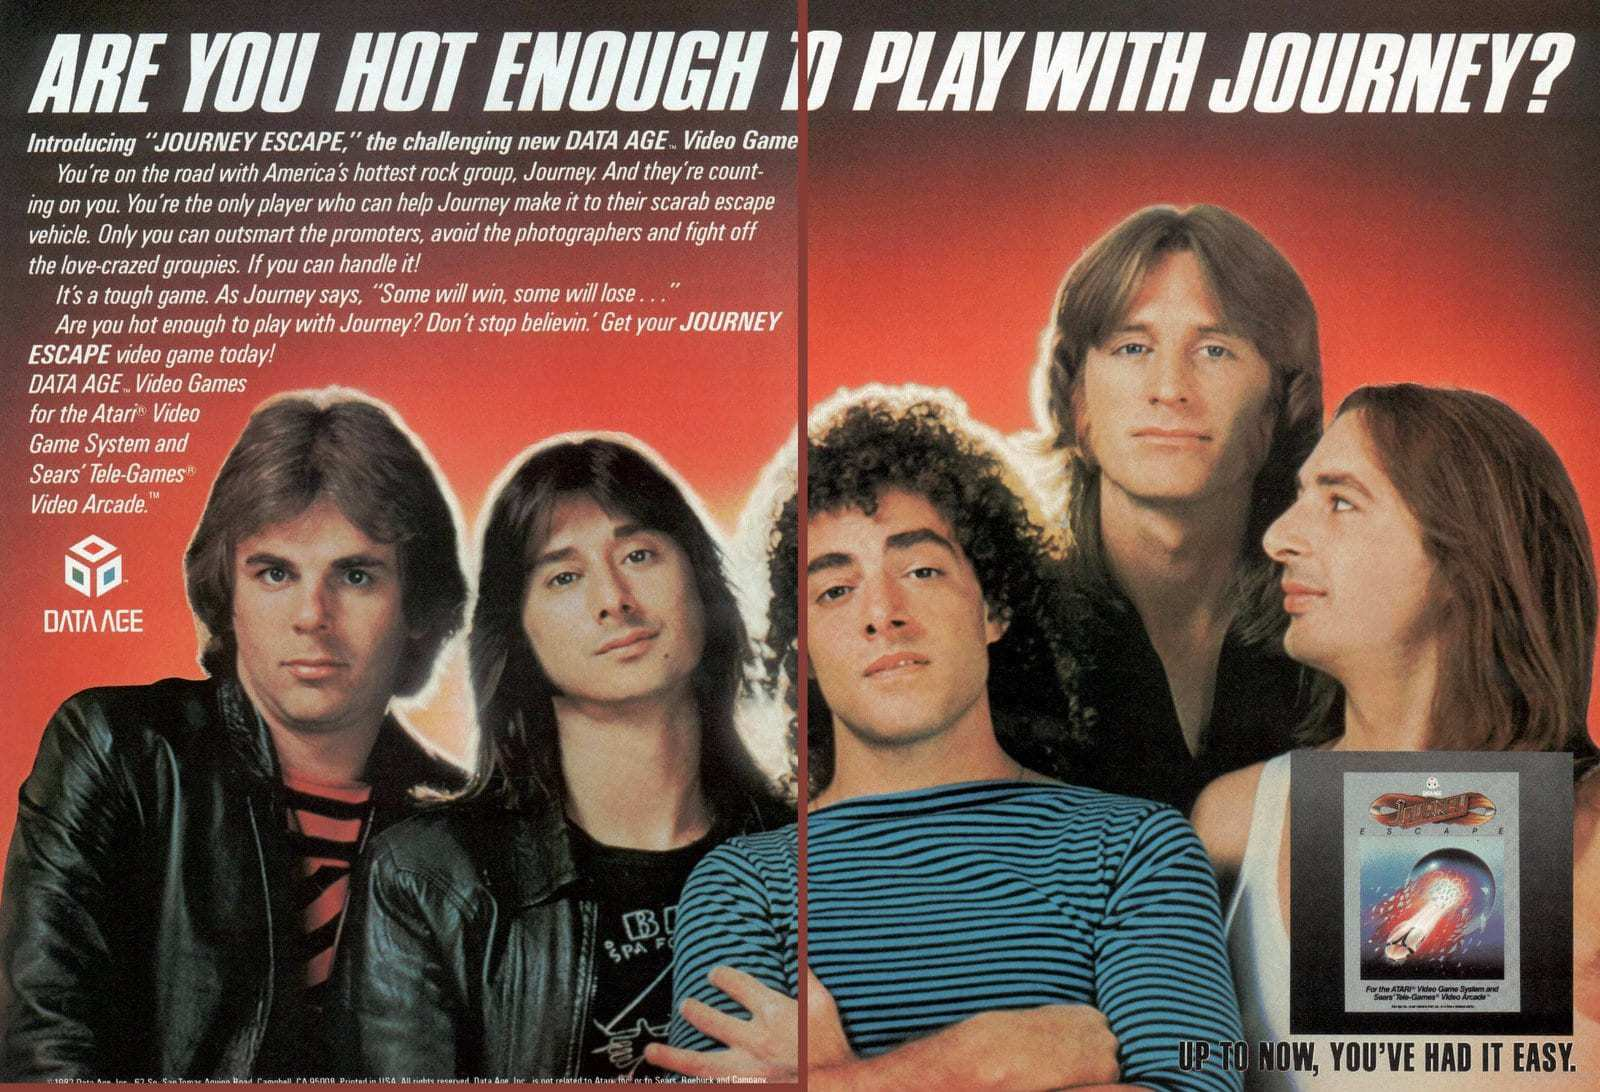 Escape Rock band Journey gets